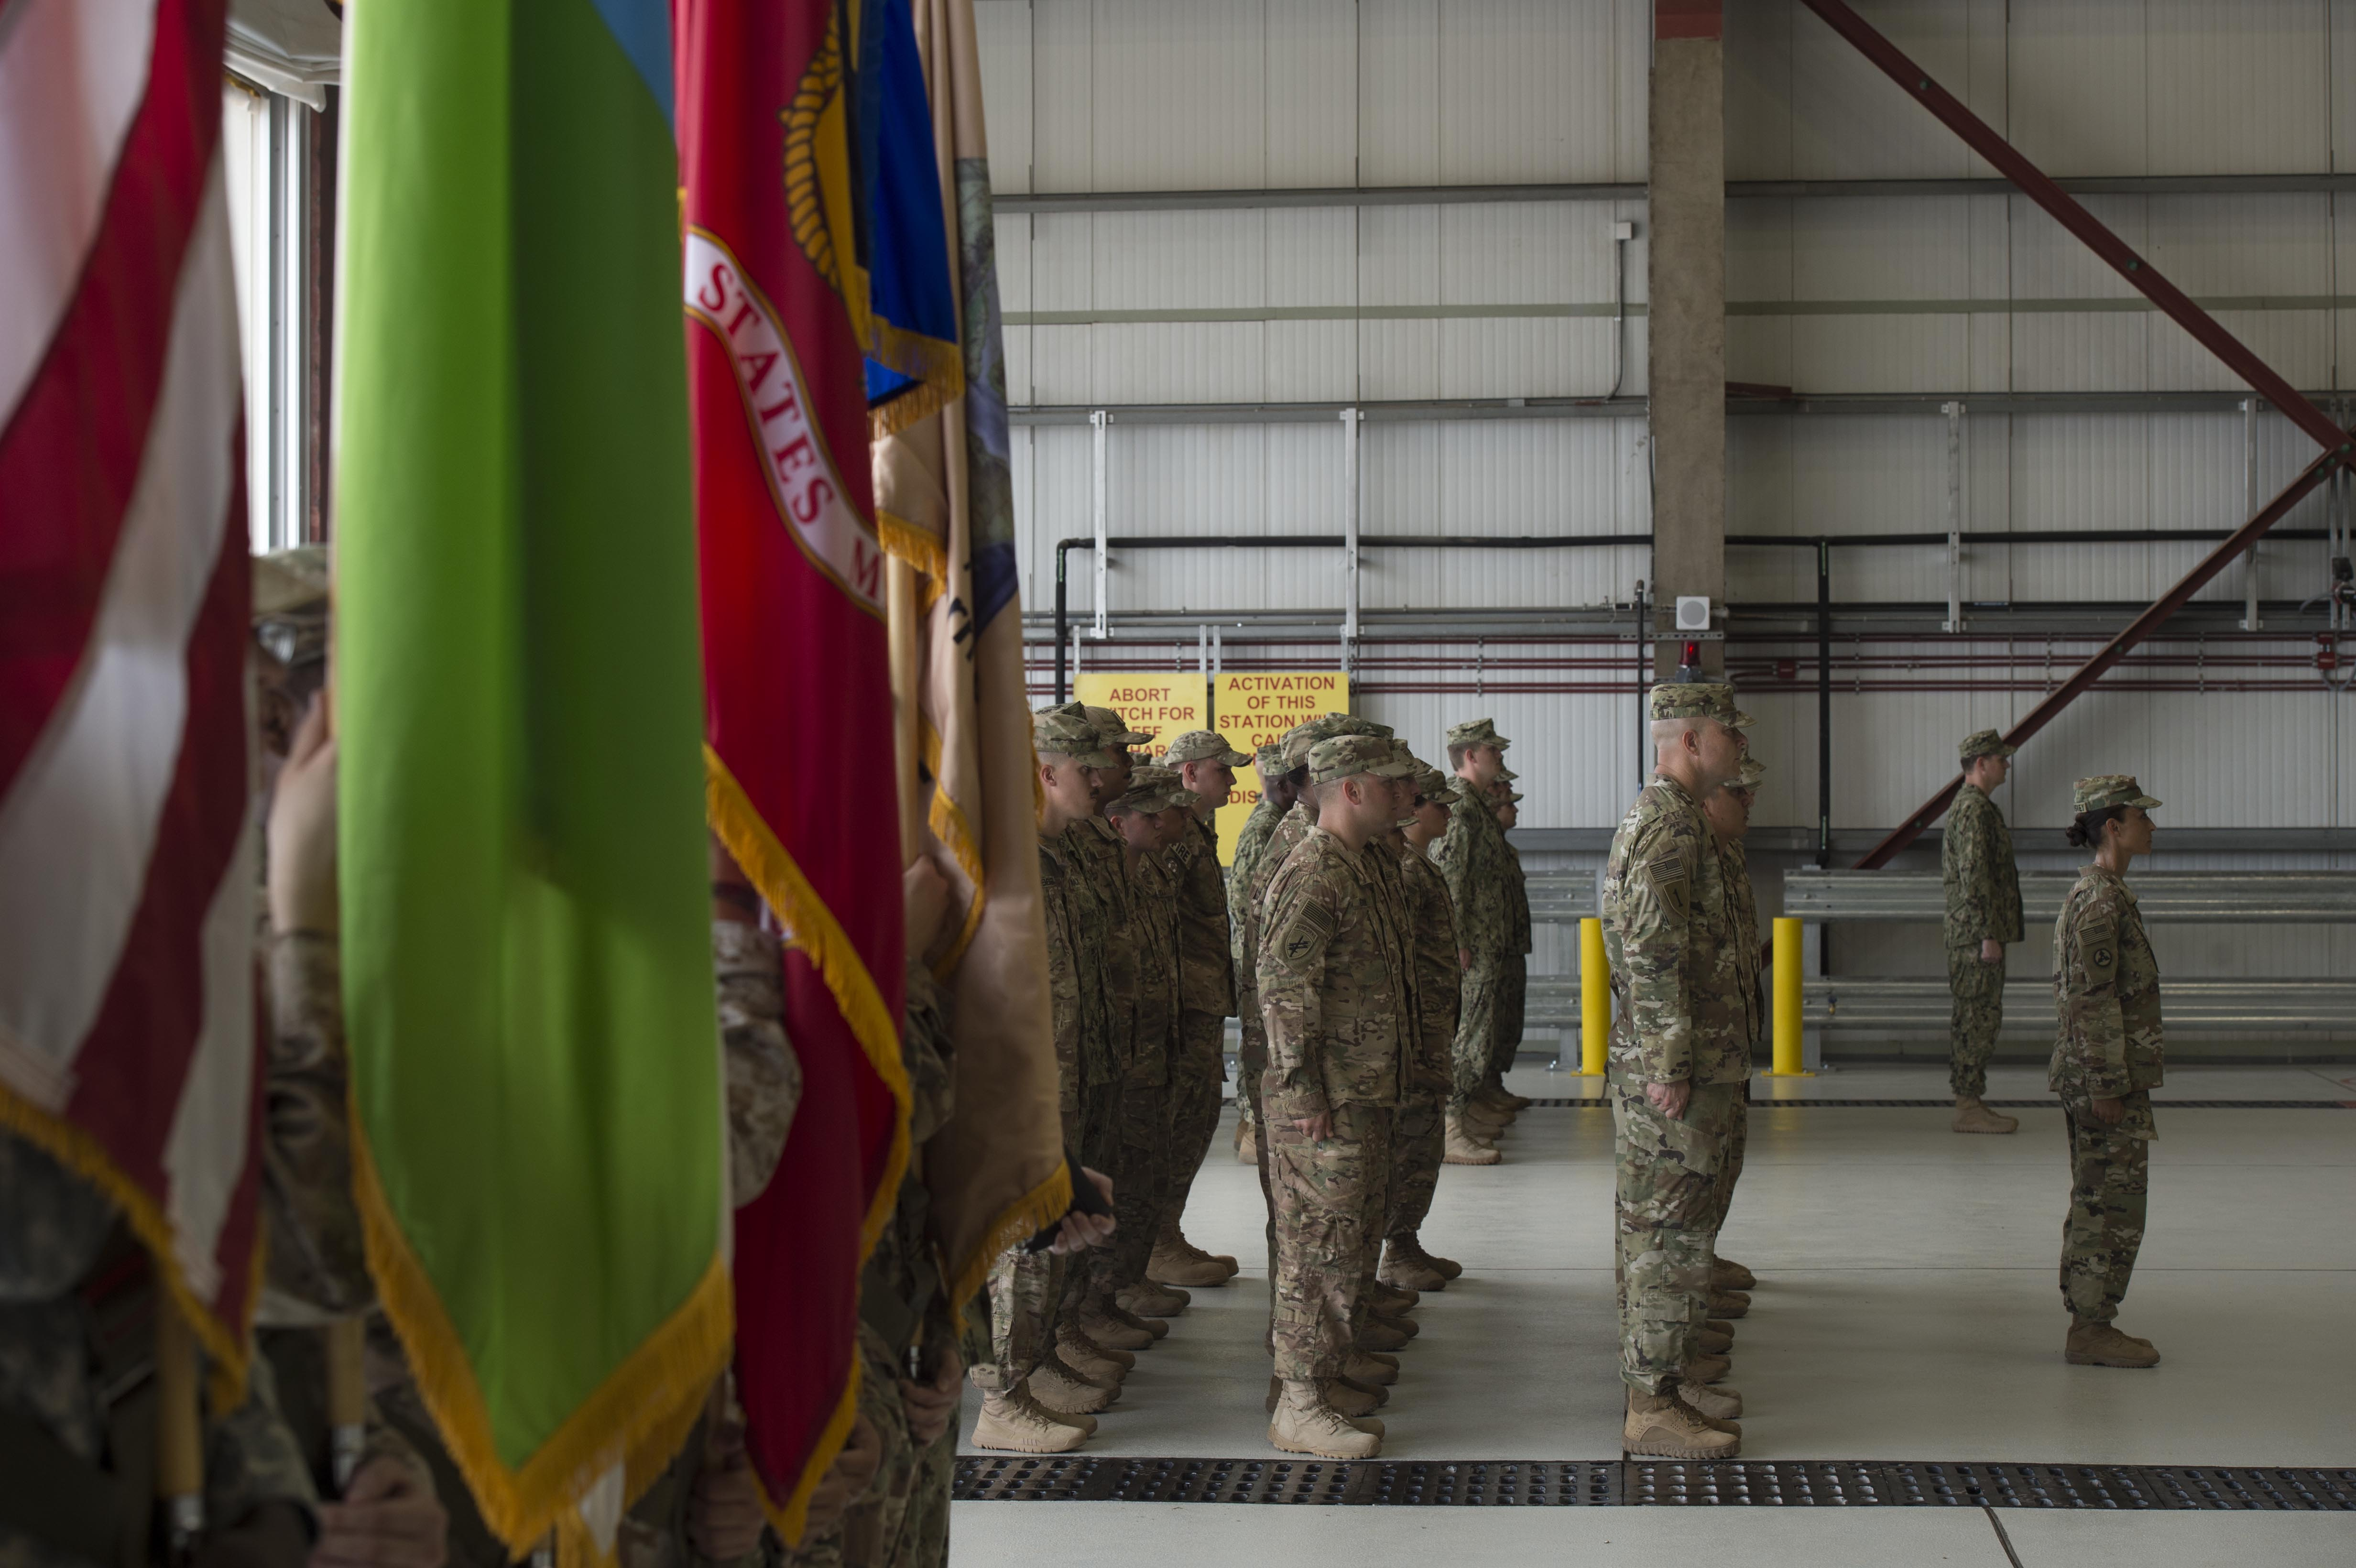 Members of Combined Joint Task Force-Horn of Africa stand at attention as responsibilities of the unit are transferred to a new commander during the CJTF-HOA change of command ceremony April 13, 2016, at Camp Lemonnier, Djibouti. The ceremony also featured a transfer of responsibility during which U.S. Navy Command Master Chief Geoffrey P. Steffee assumed the role of CTJF-HOA command senior enlisted leader from U.S. Army Command Sgt. Maj. Butler Kendrick Jr. (U.S. Air Force photo by Staff Sgt. Eric Summers Jr.)